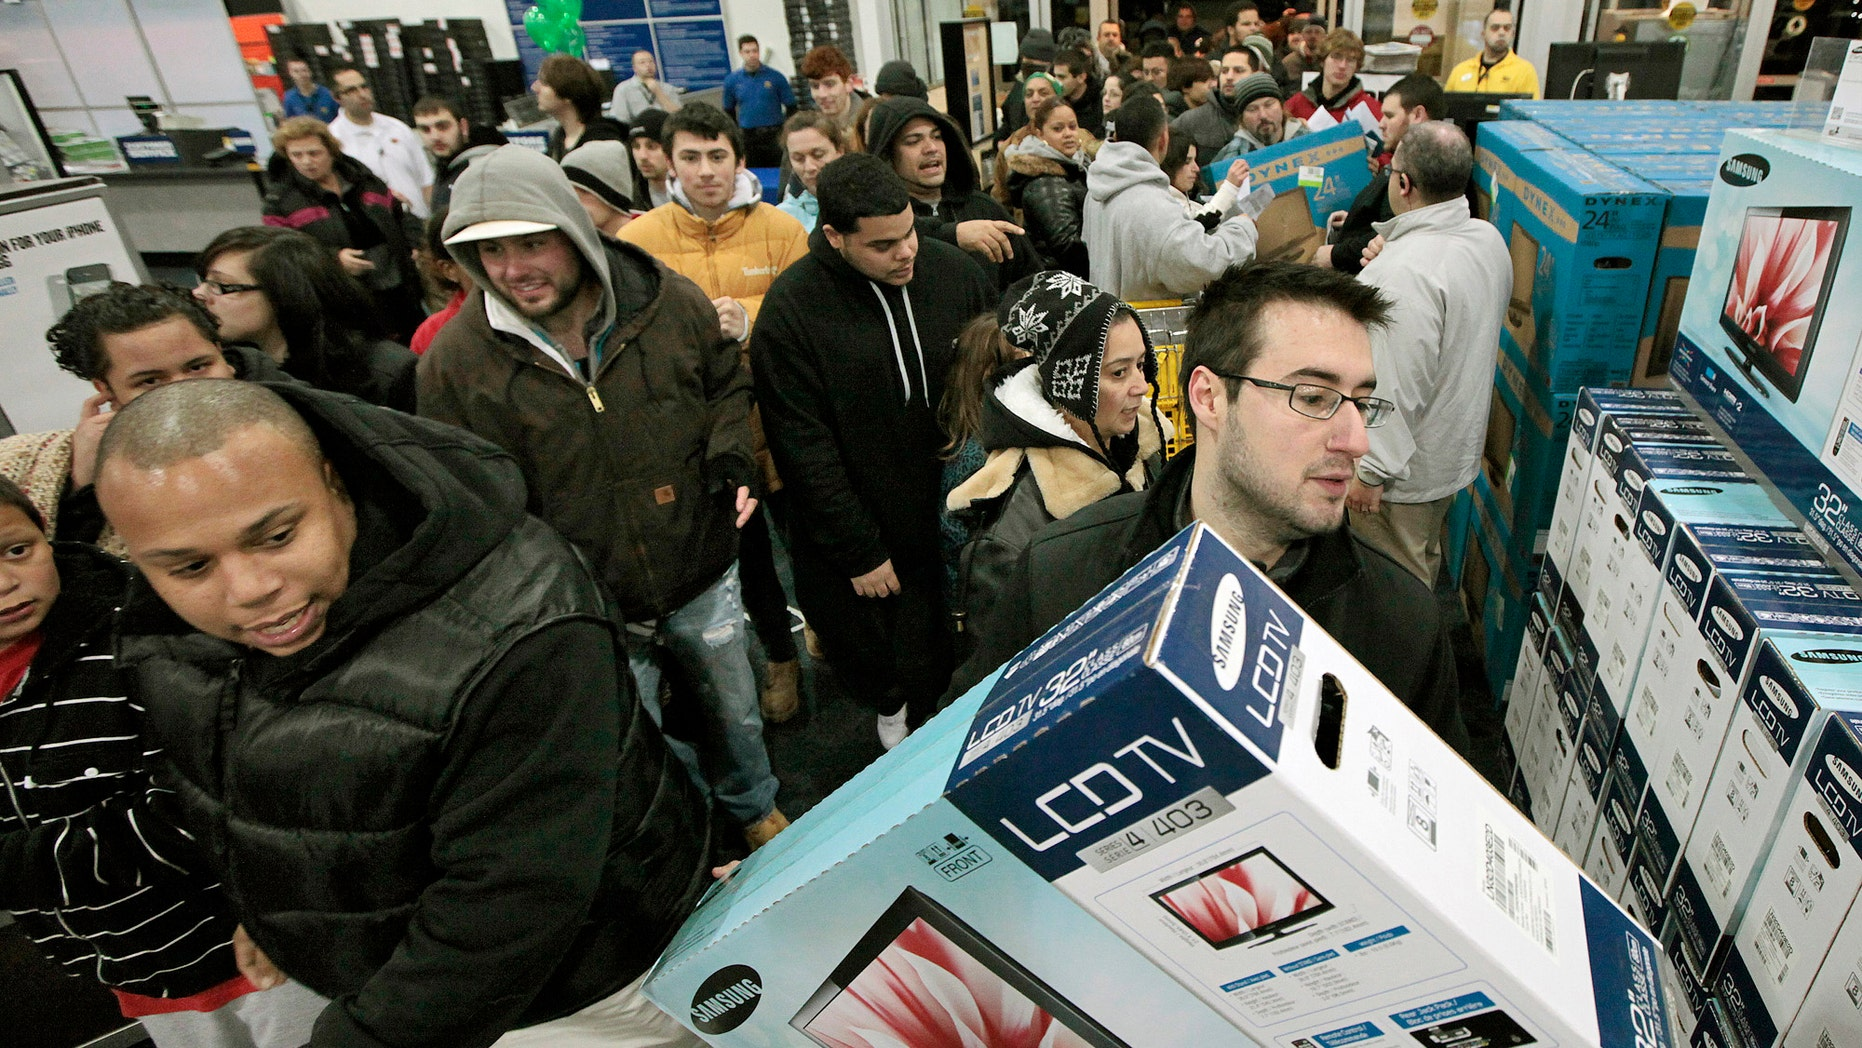 Nov. 25, 2011: Black†Friday shoppers rush into Best Buy in North Dartmouth, Mass.